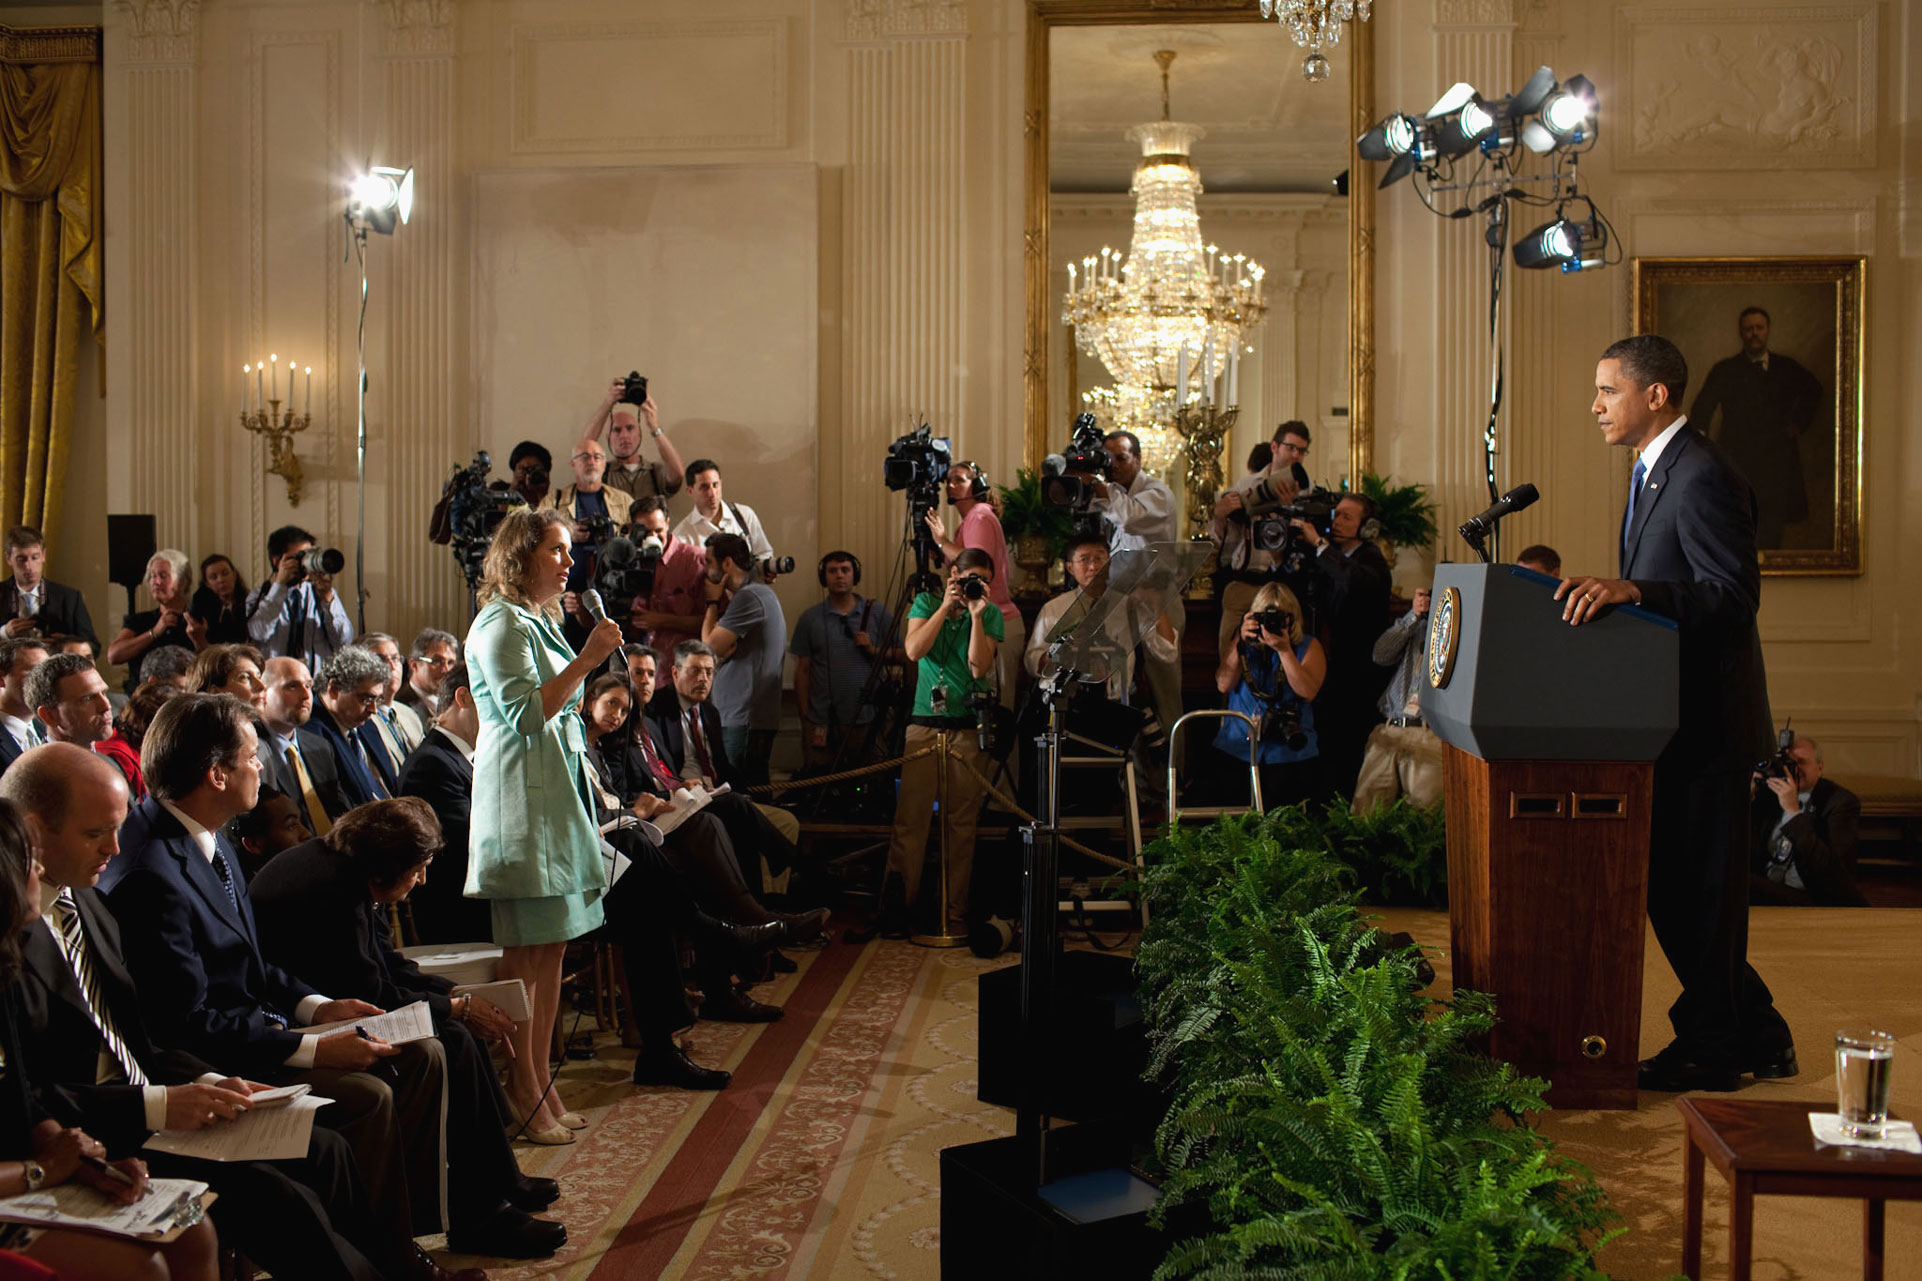 The President Takes a Question on the BP Oil Spill Response